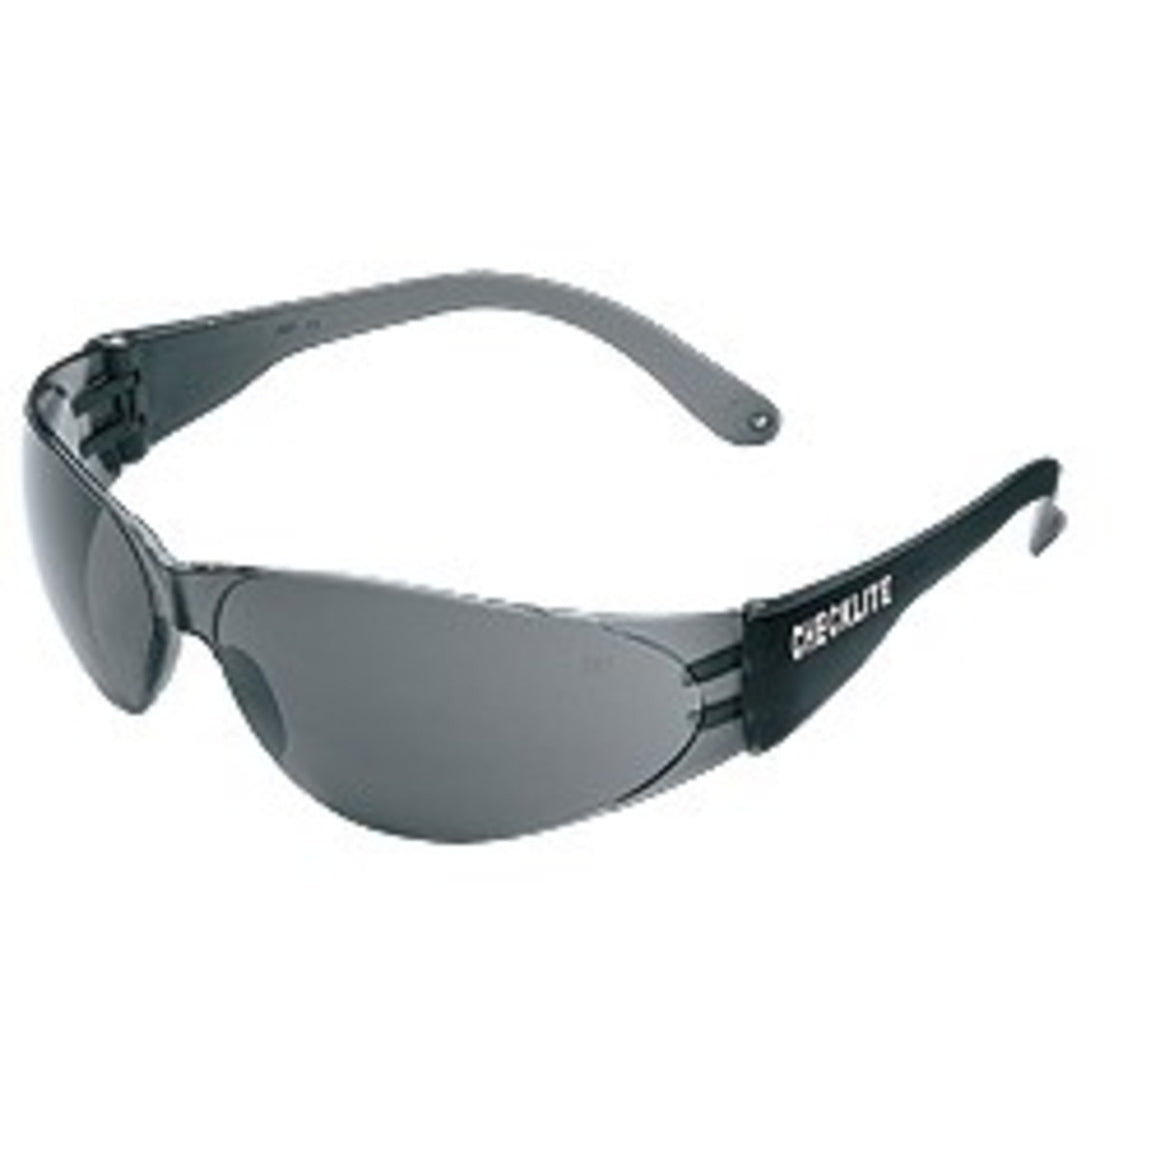 MCR Checklite Safety Glasses,Wrap Around,Gray Temples,Lens Gray